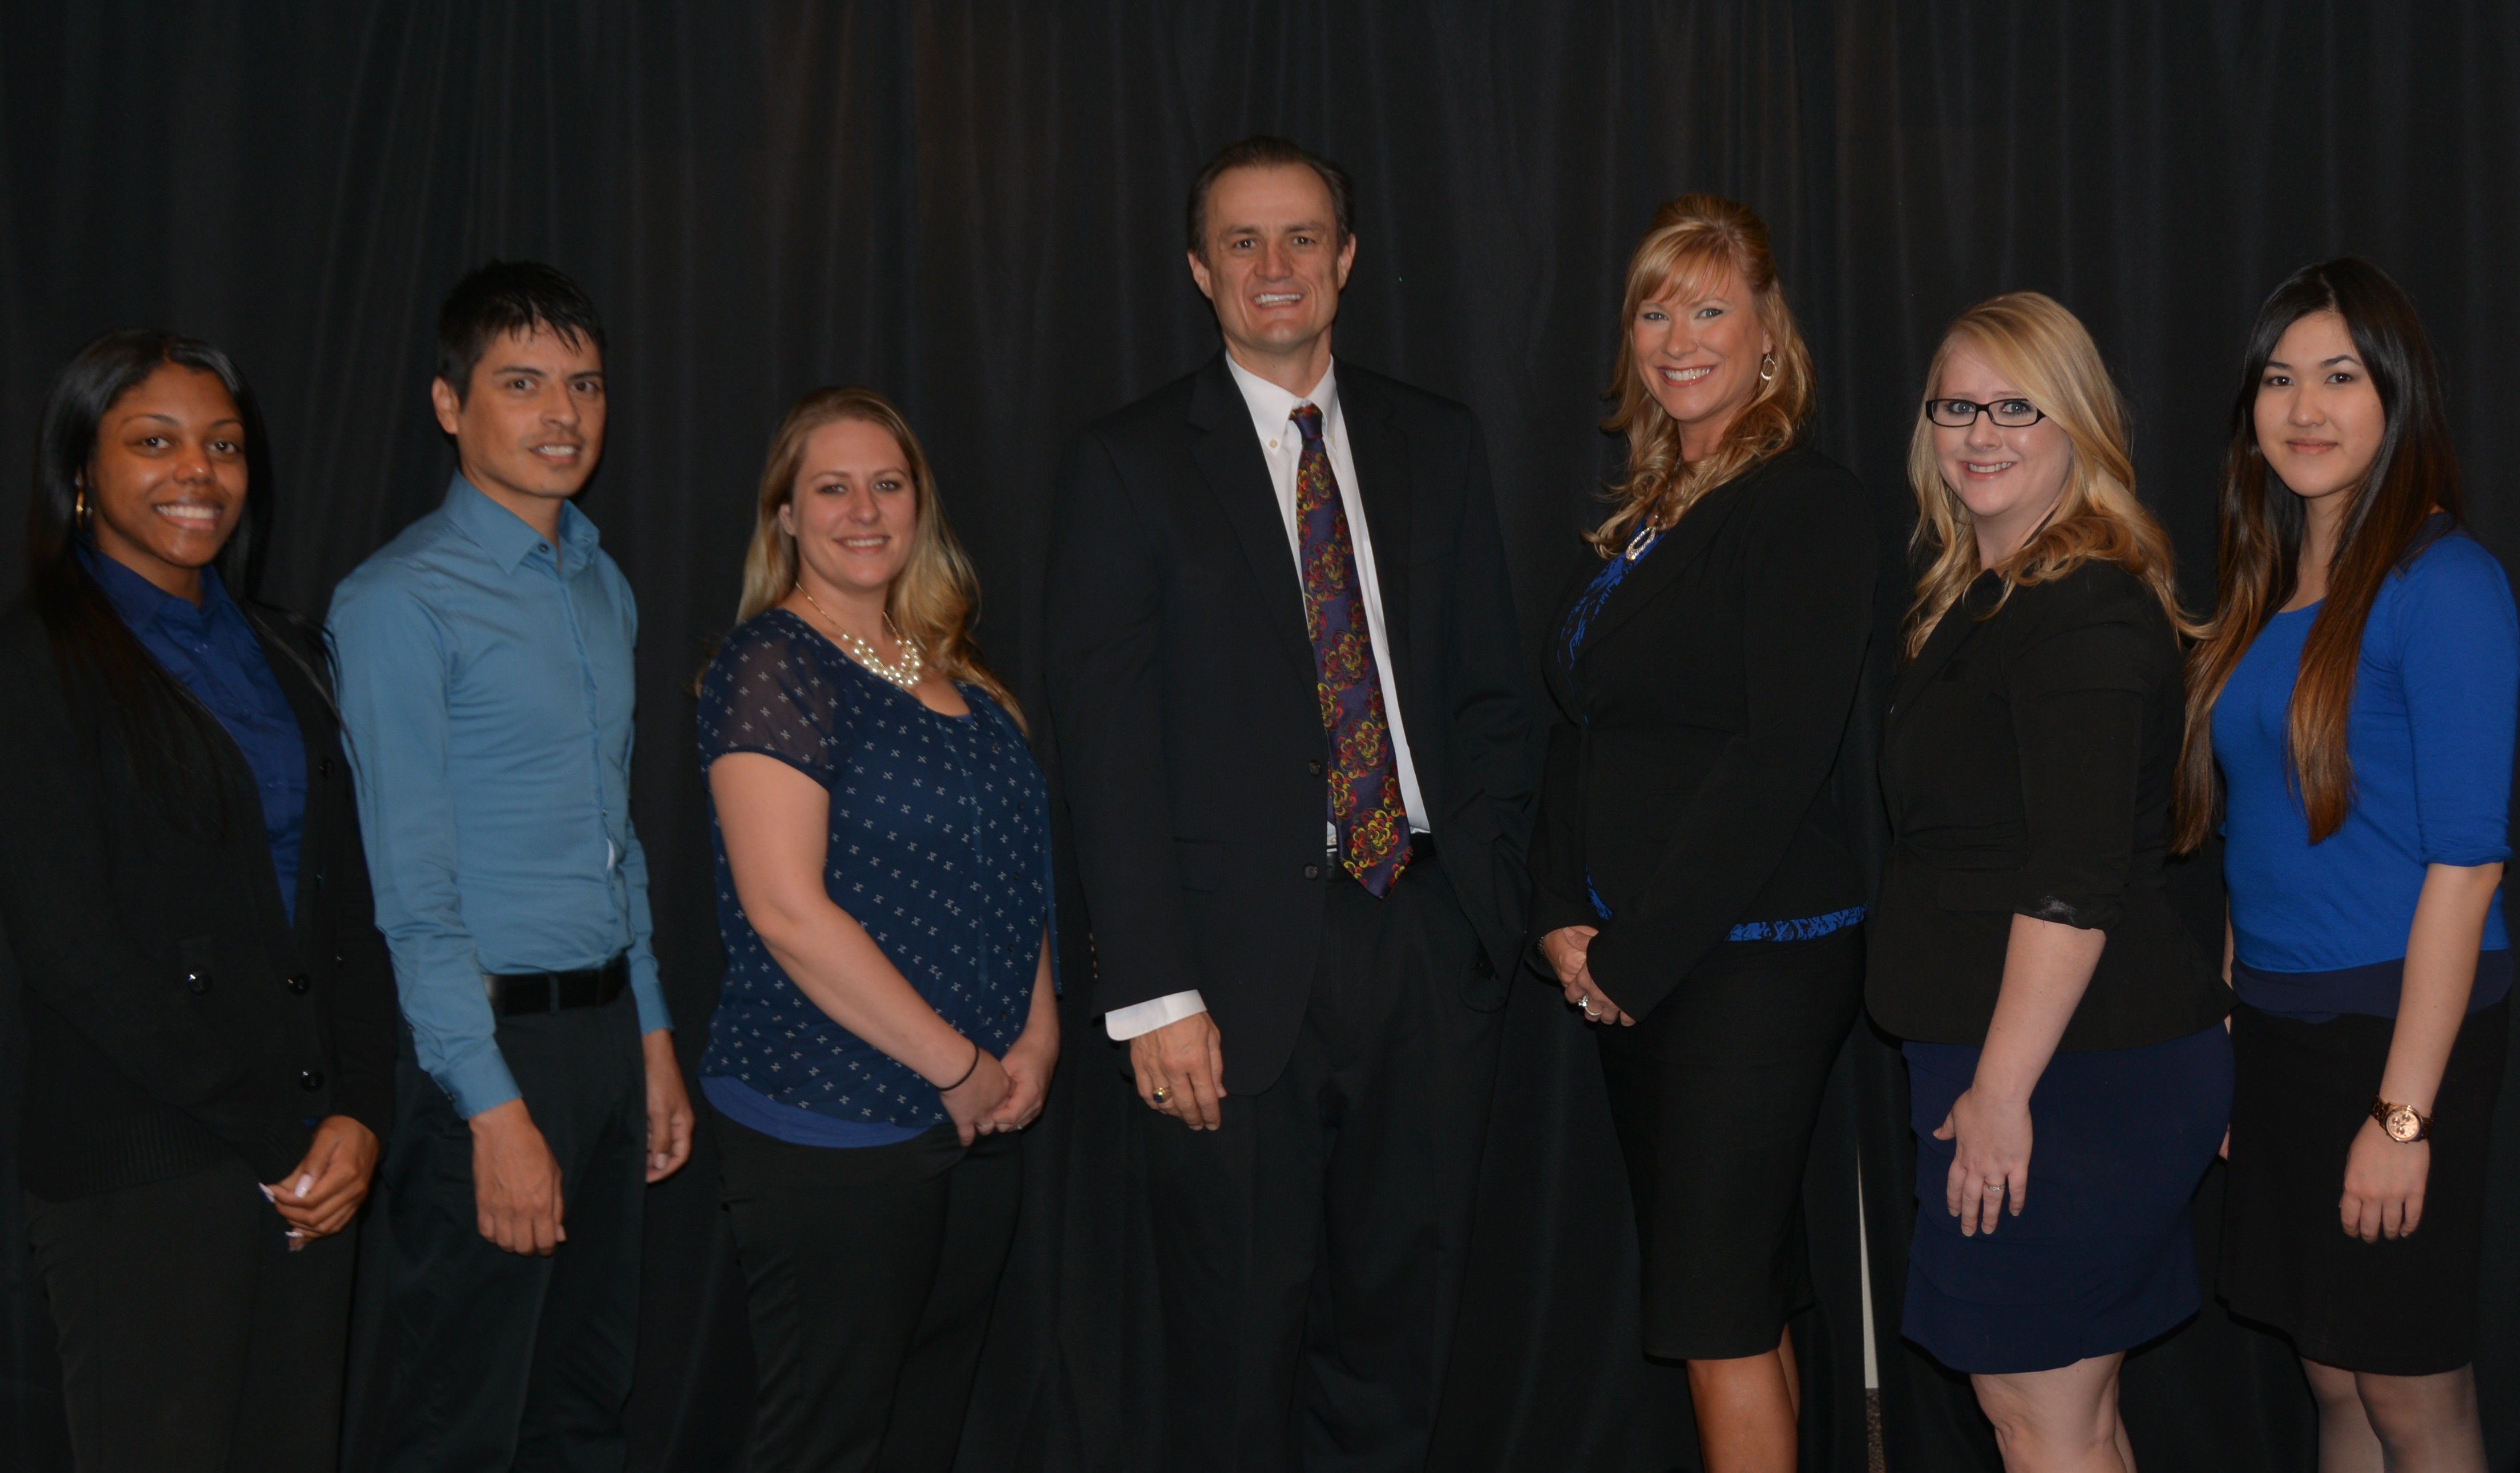 Gary and Staff at Law Offices of Gary L. Fales